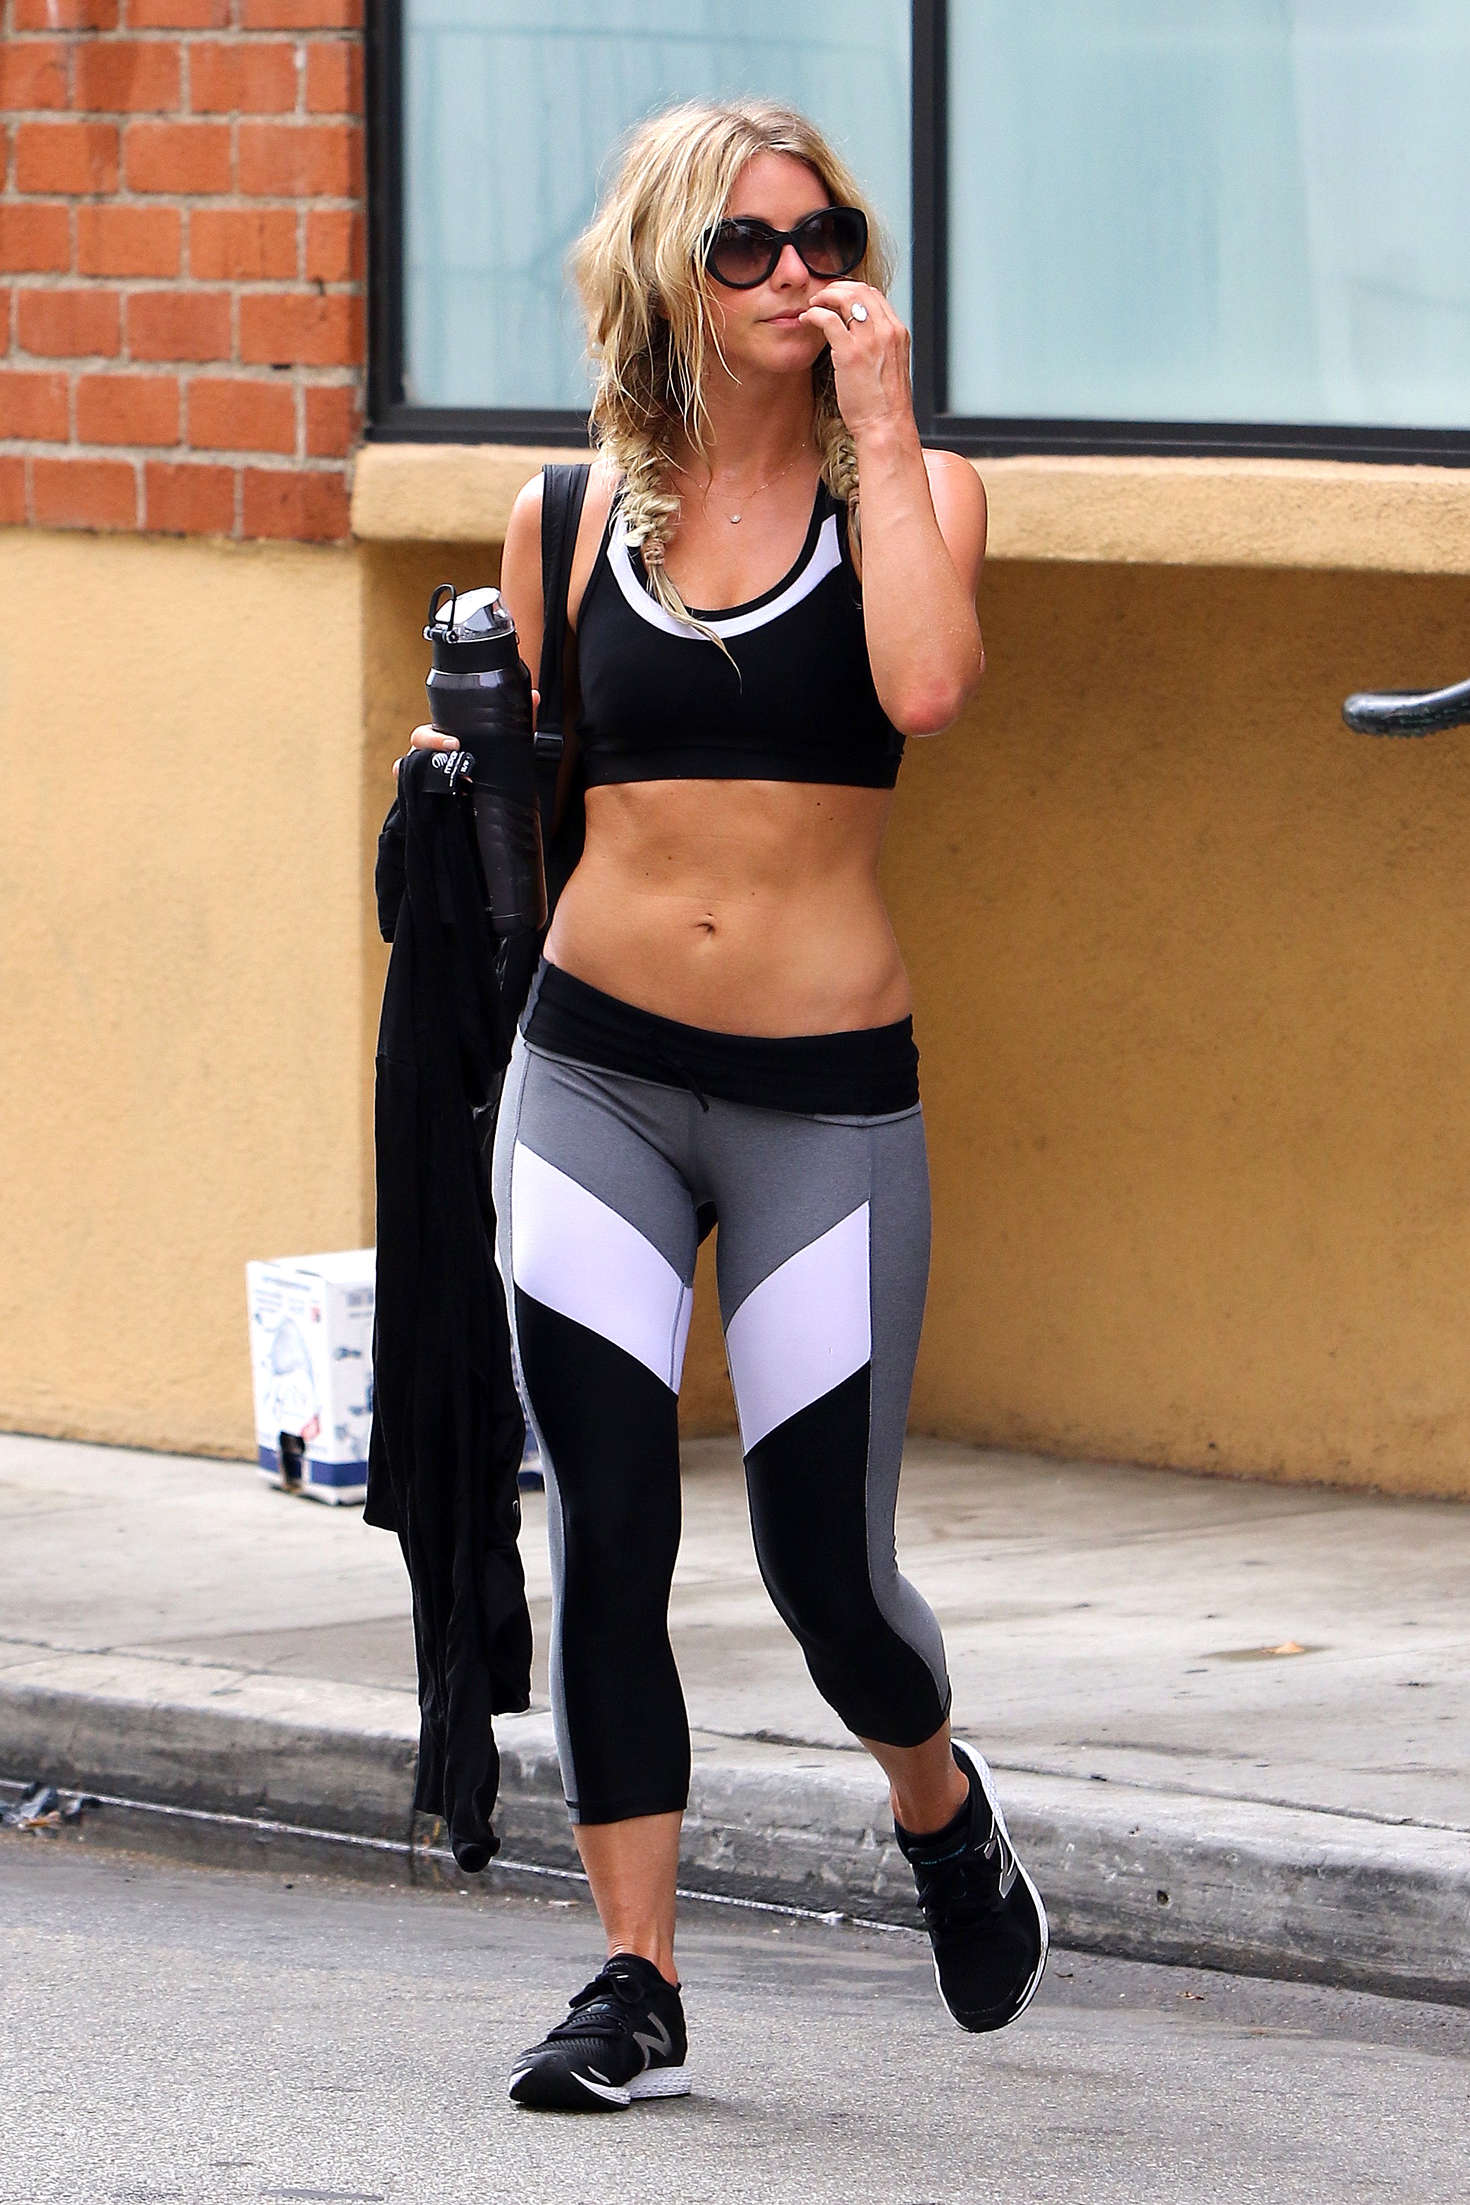 Julianne Hough in Leggings and Sports Bra 02  GotCeleb